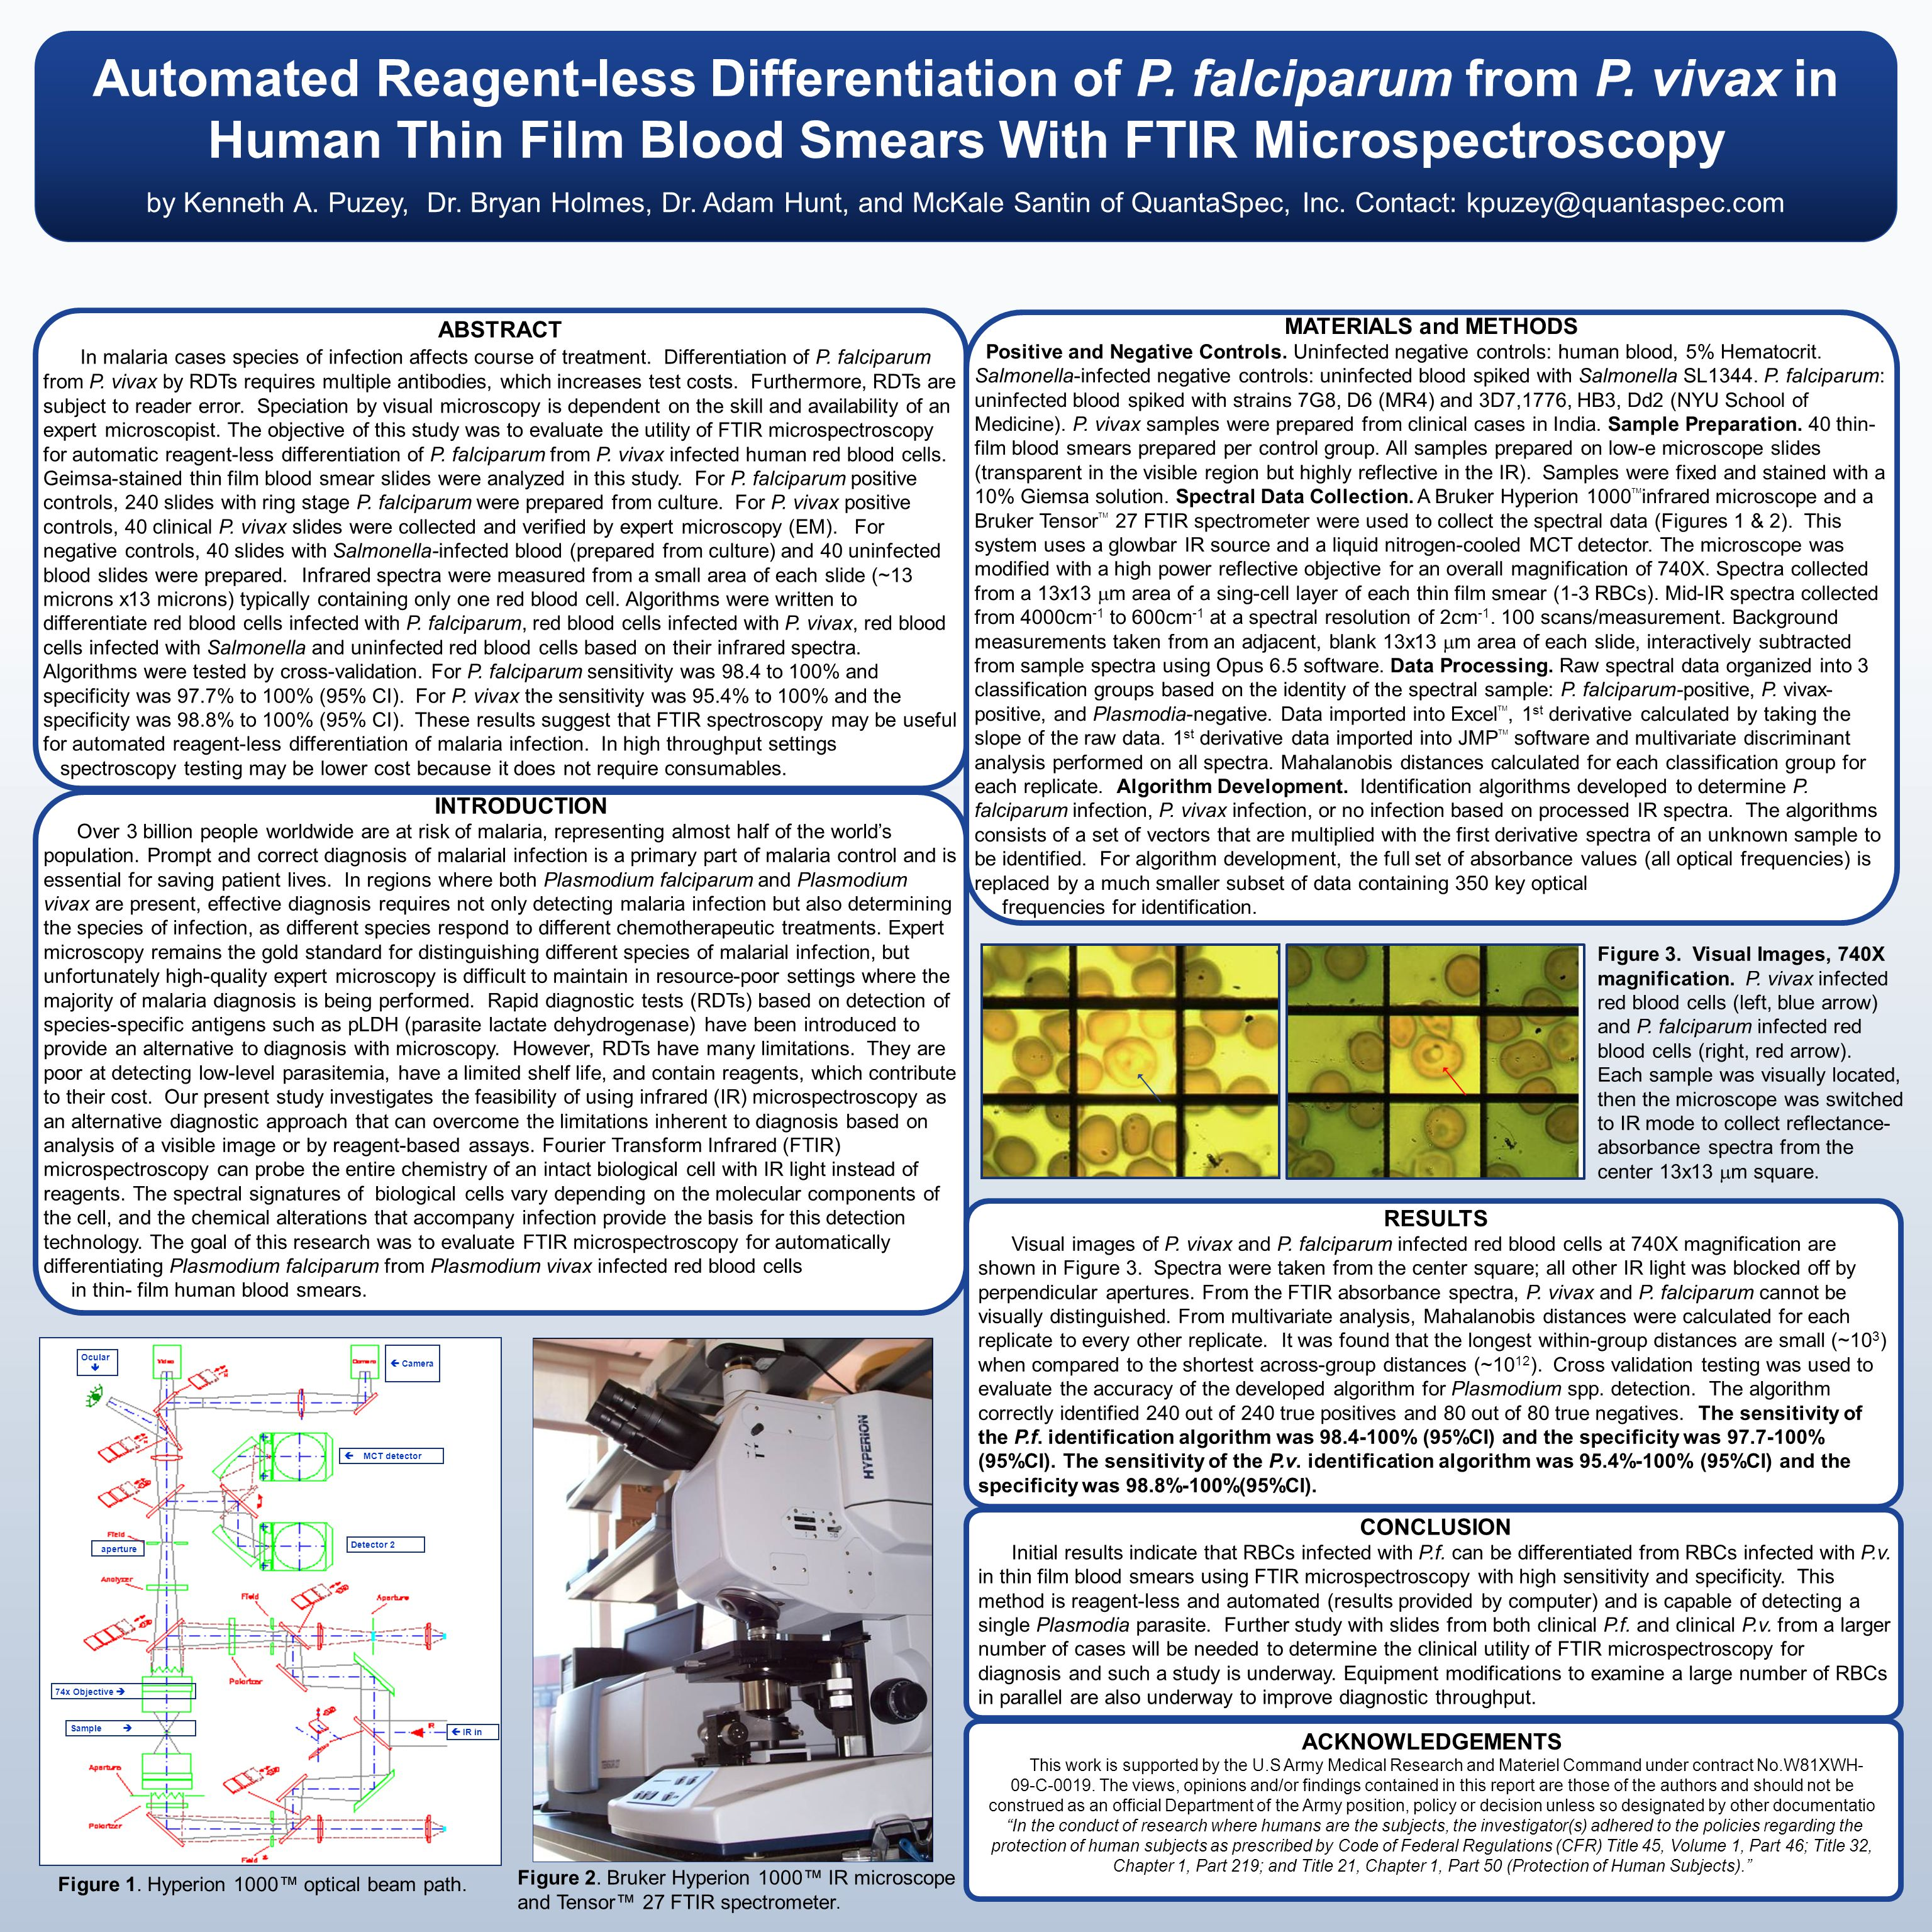 Automated Reagent-less Differentiation of Three Drug Susceptible Strains of P.